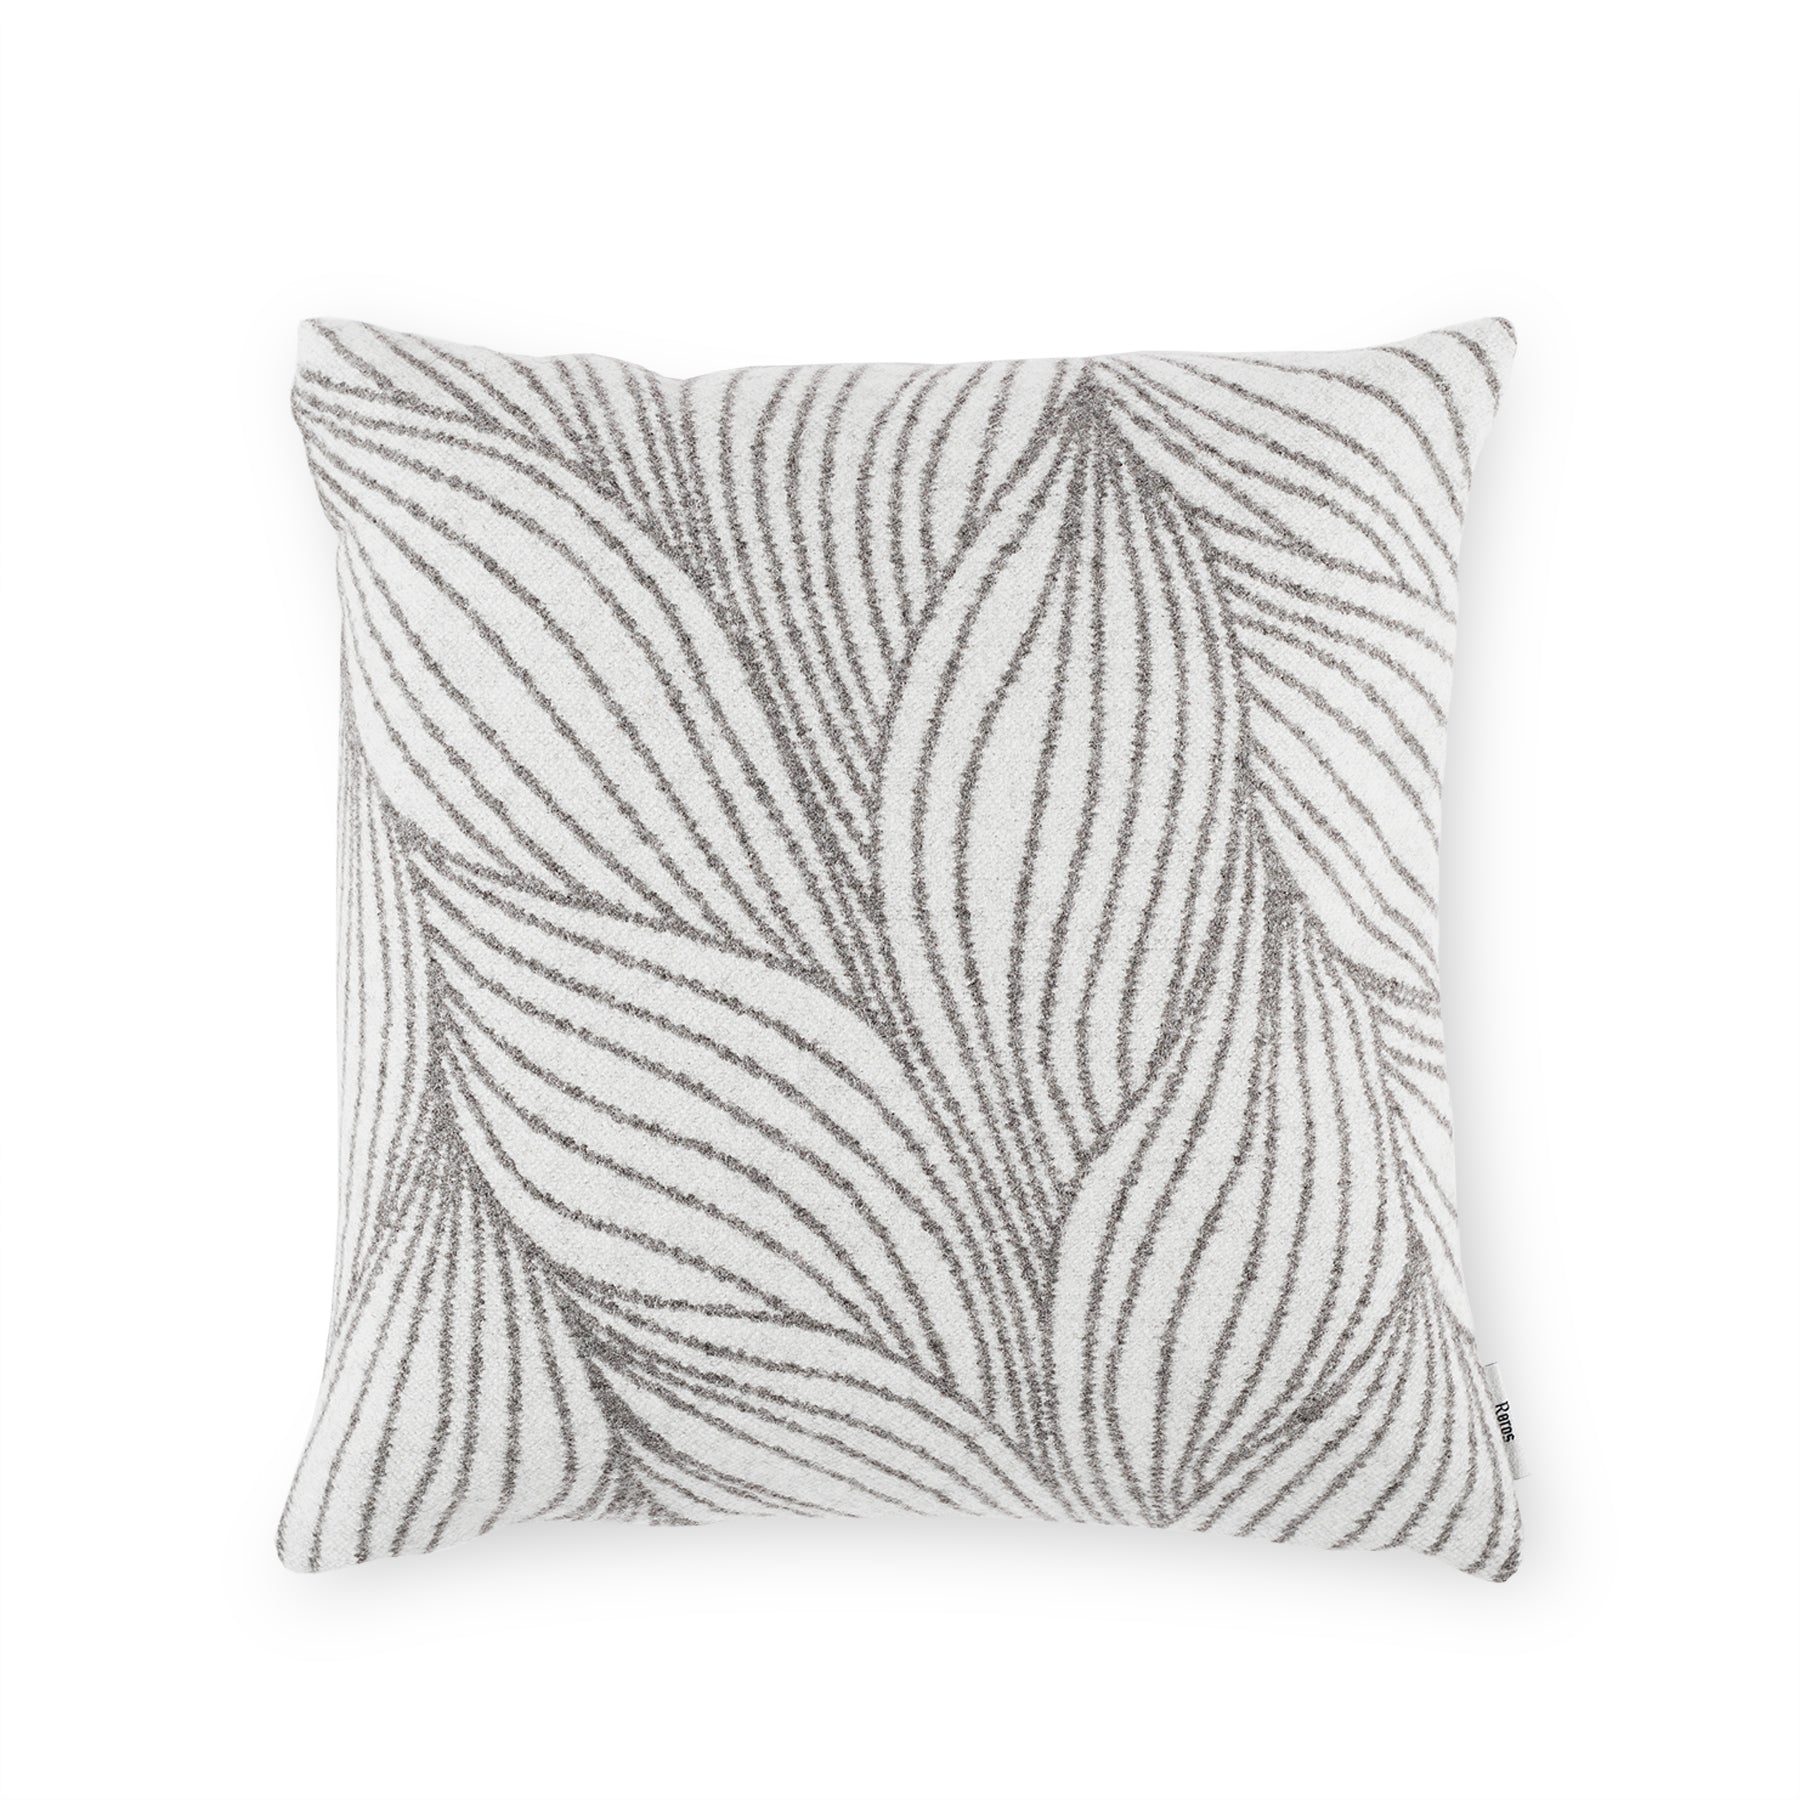 Flette Pillow in Natural Zoom Image 1